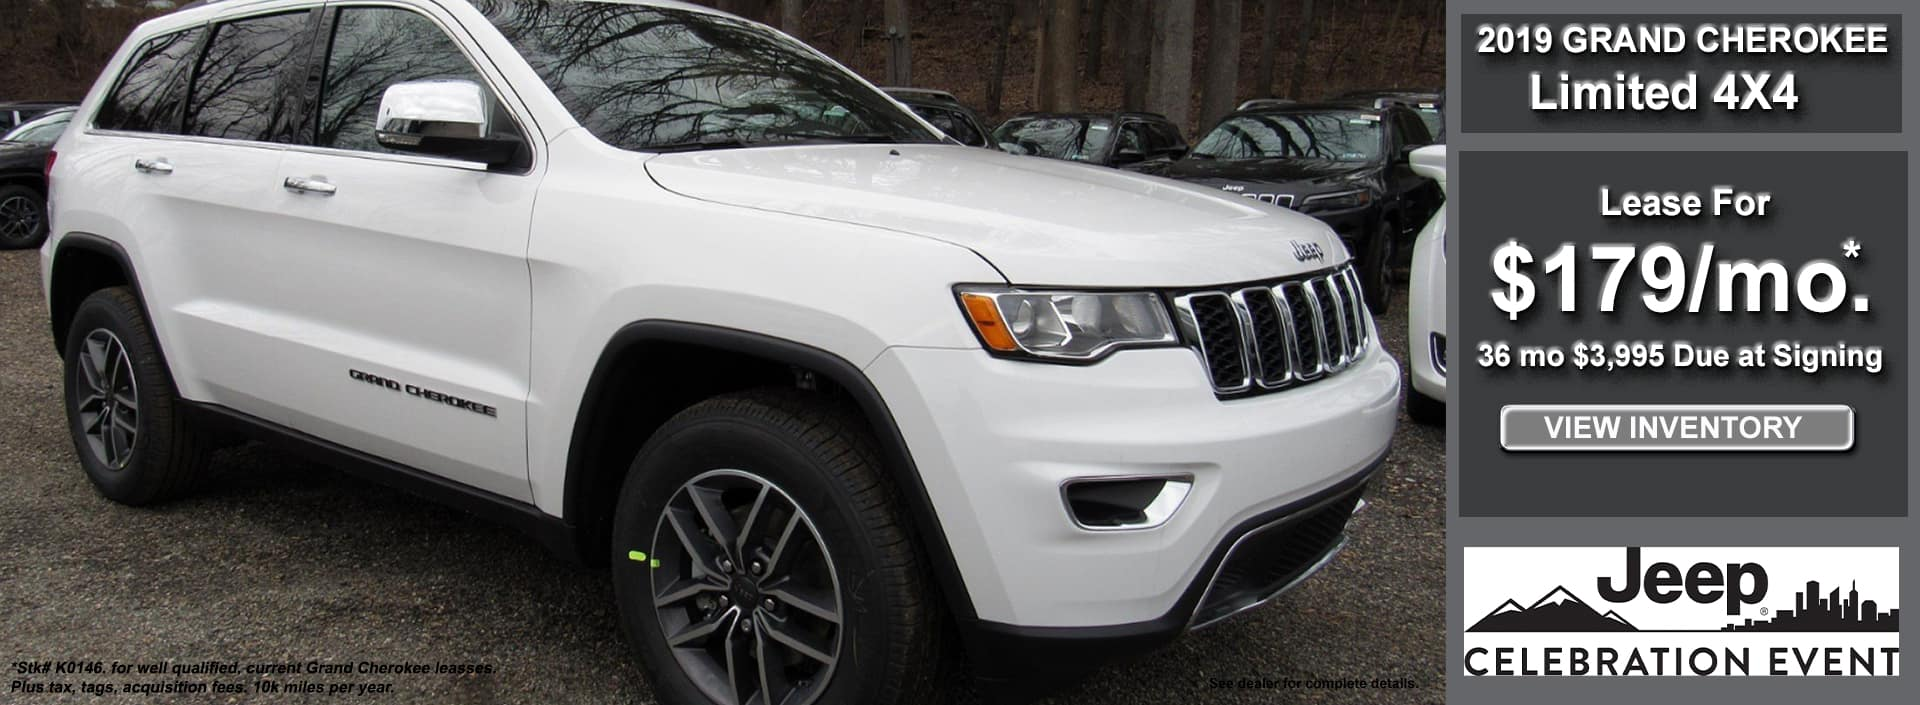 Grand Cherokee Limited Lease May 2019